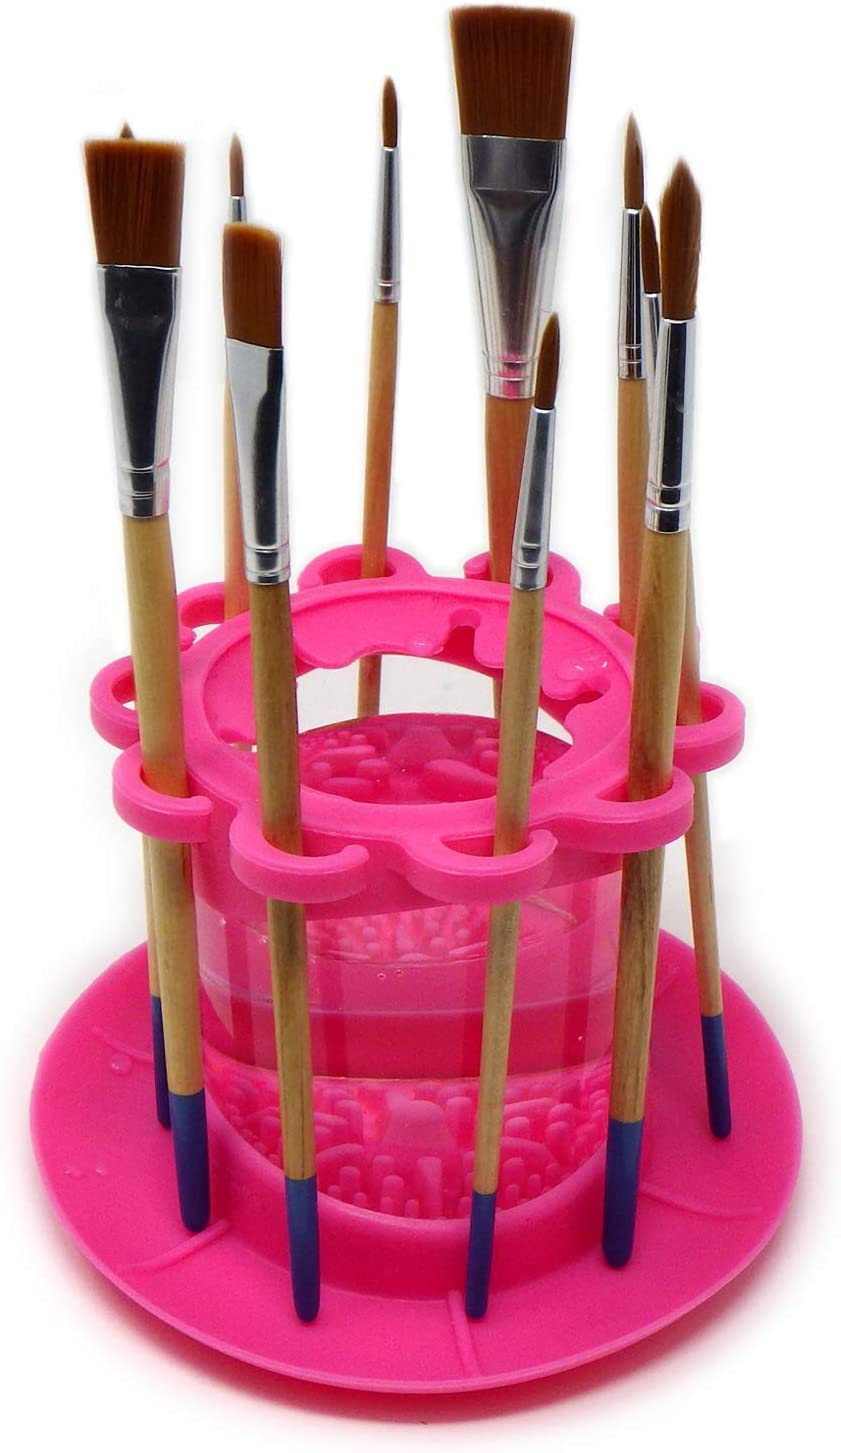 Studio and Water-Based Mediums/… All-in-One Brushes Holder /& Silicone Cleaning System for Acrylic Watercolor Classroom Fine Art Paint Brush Cleaner Rinse Cup